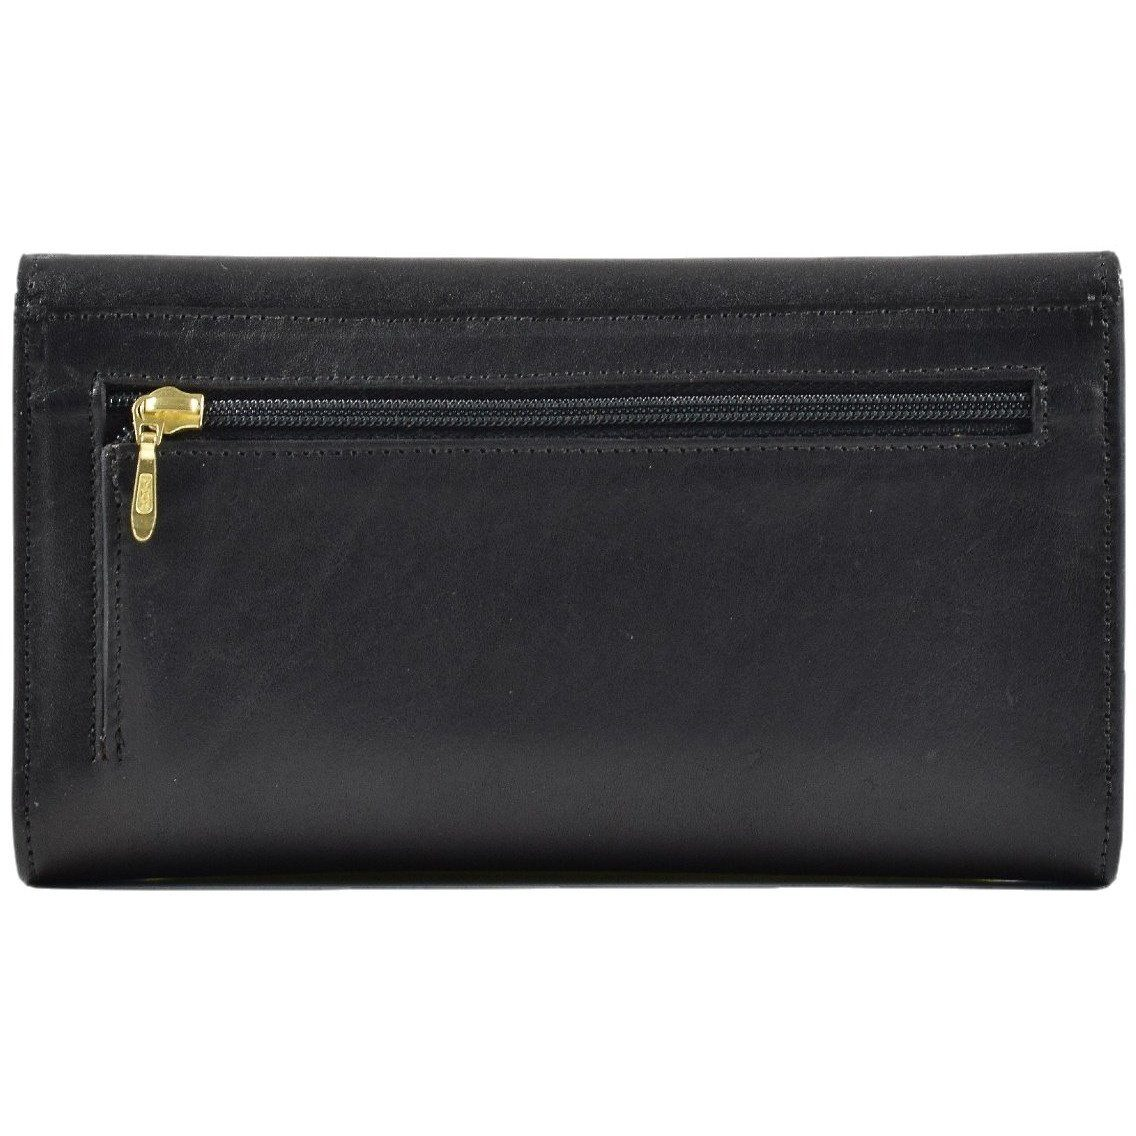 Limited Ladies Checkbook, Wallet | LAND Leather